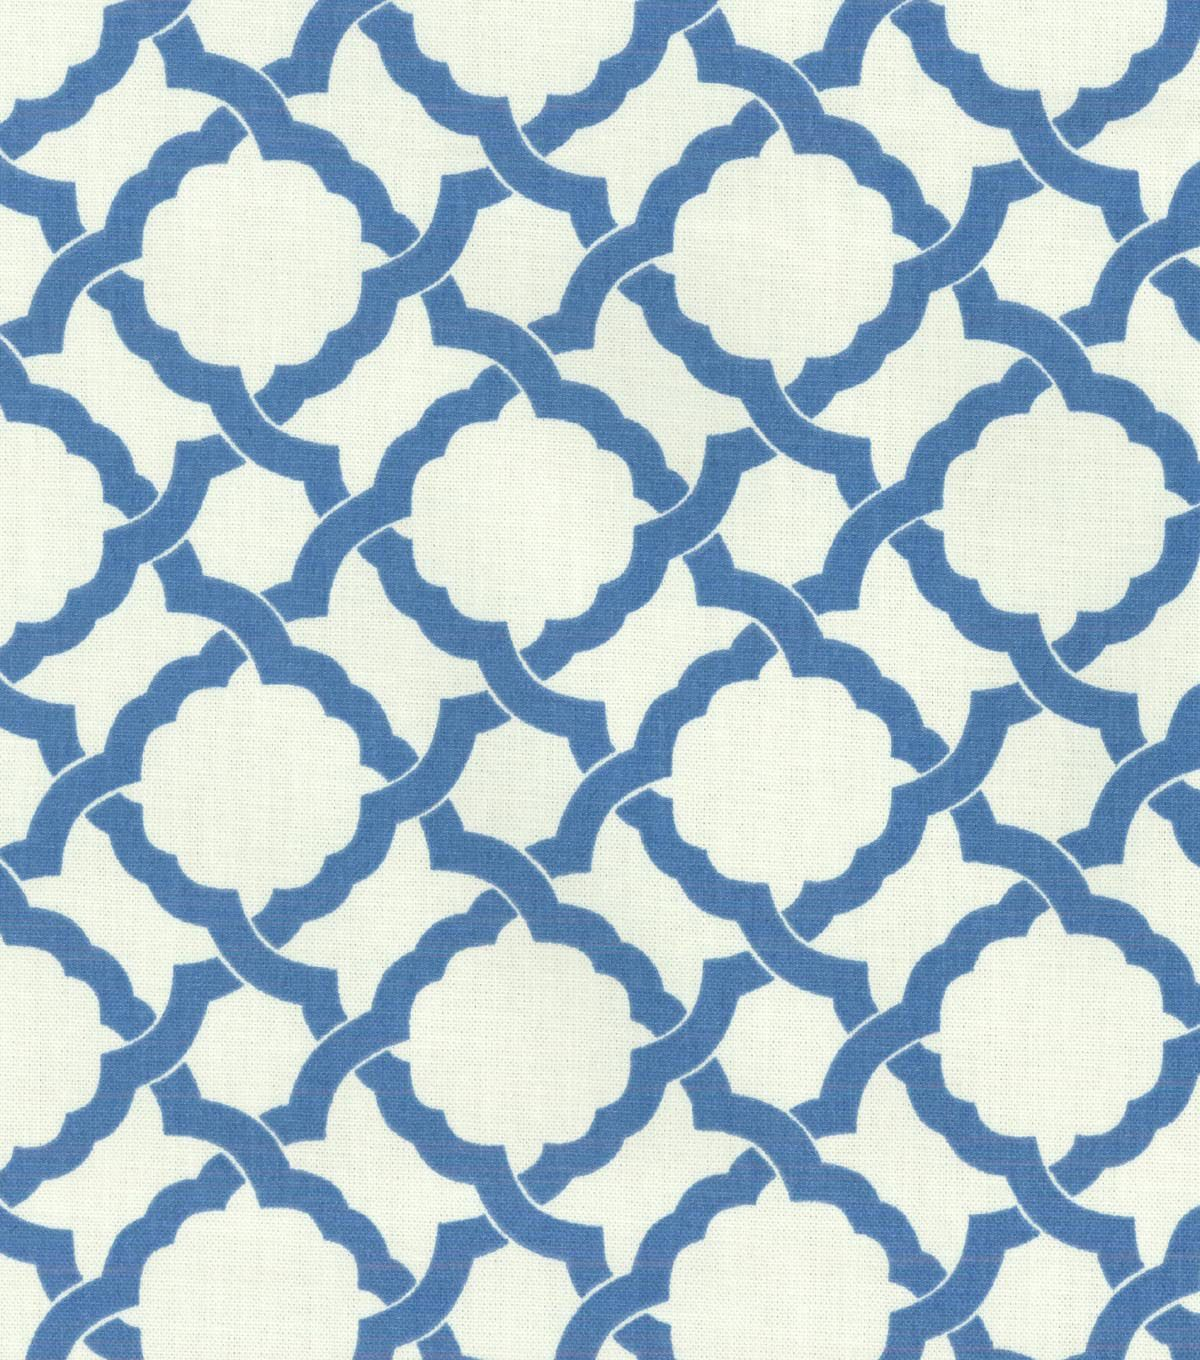 Waverly Upholstery Fabric 54 Kent Crossing Cornflower Fabric Decor Waverly Bedding Waverly Wallpaper